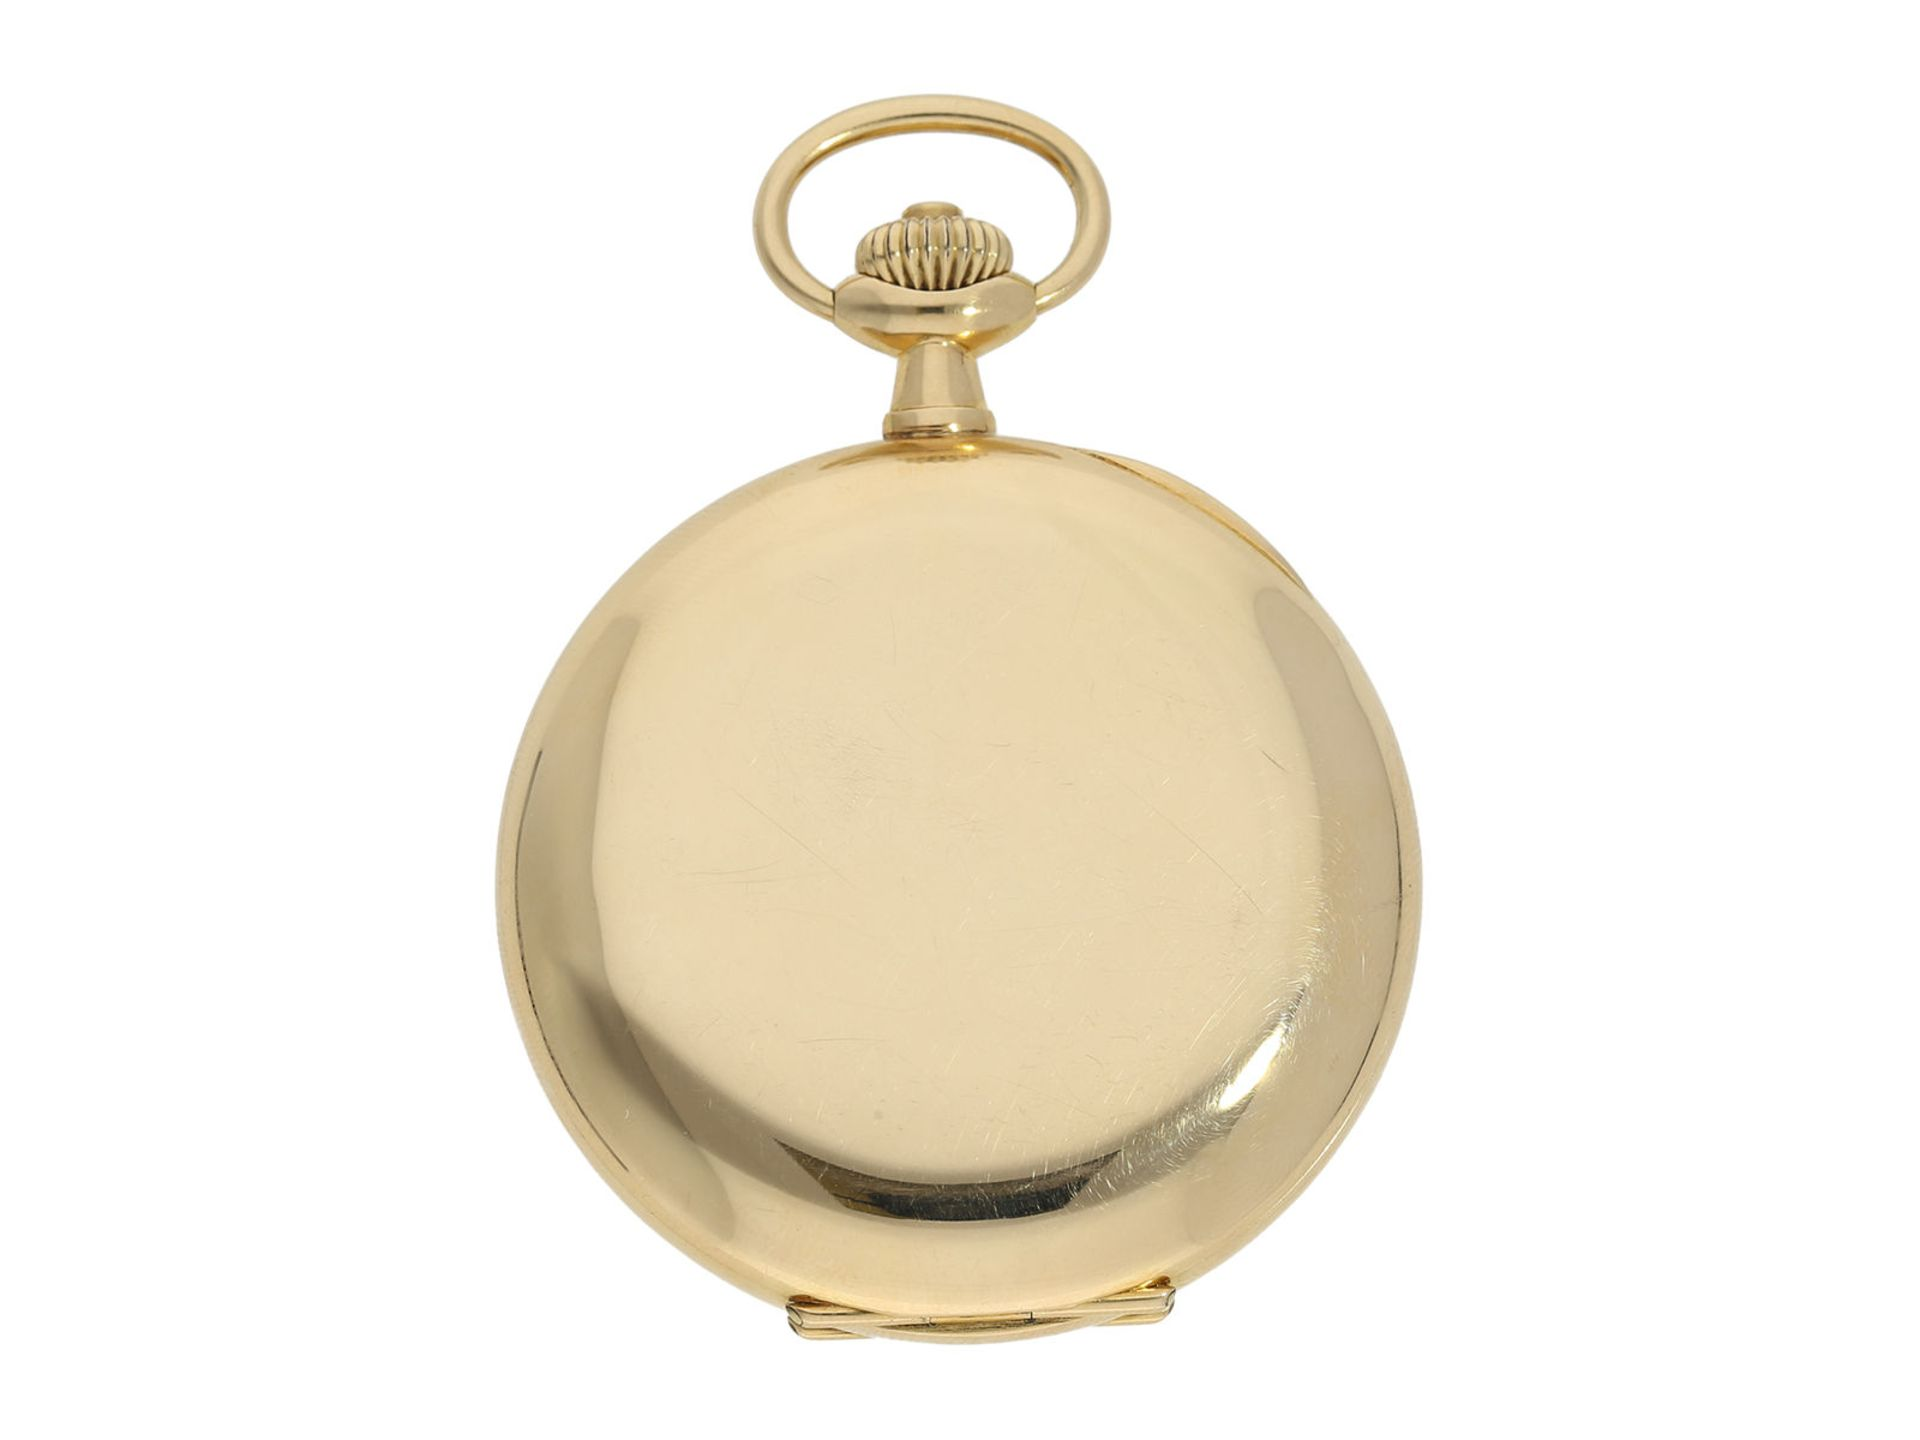 Pocket watch: Omega gold hunting case watch, ca. 1912 - Bild 8 aus 8